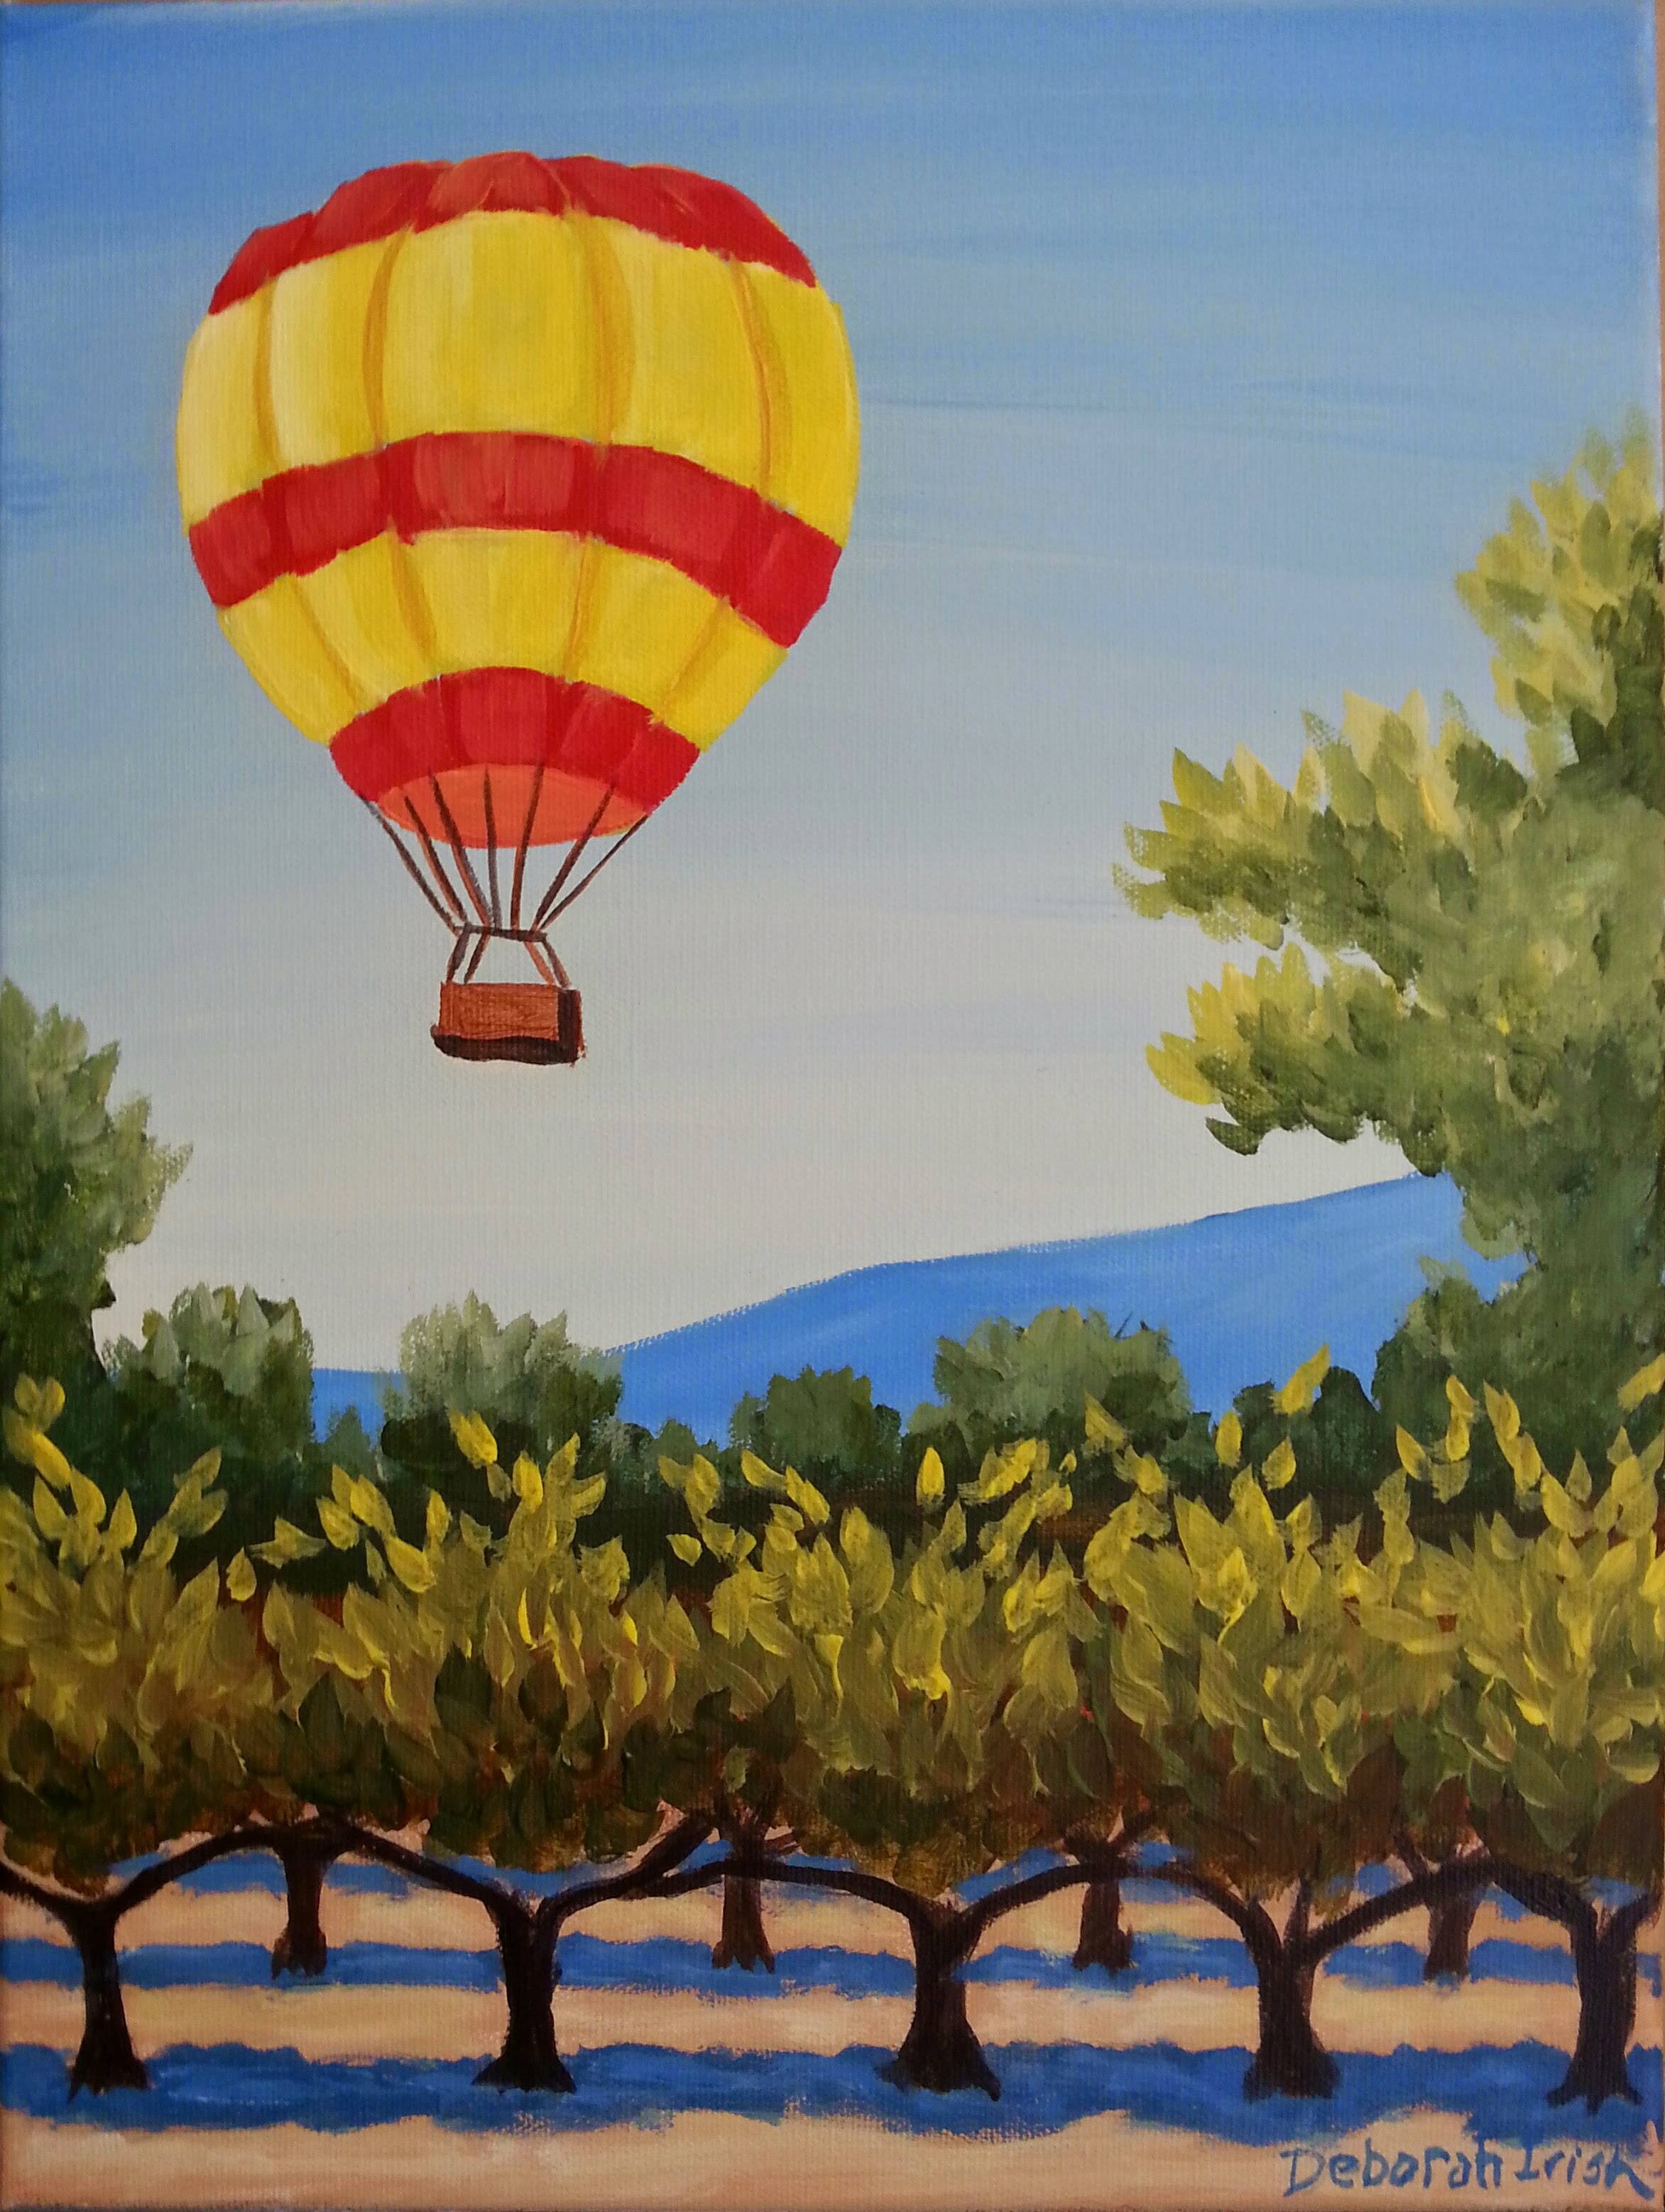 Hot Air Balloon over Vinyard